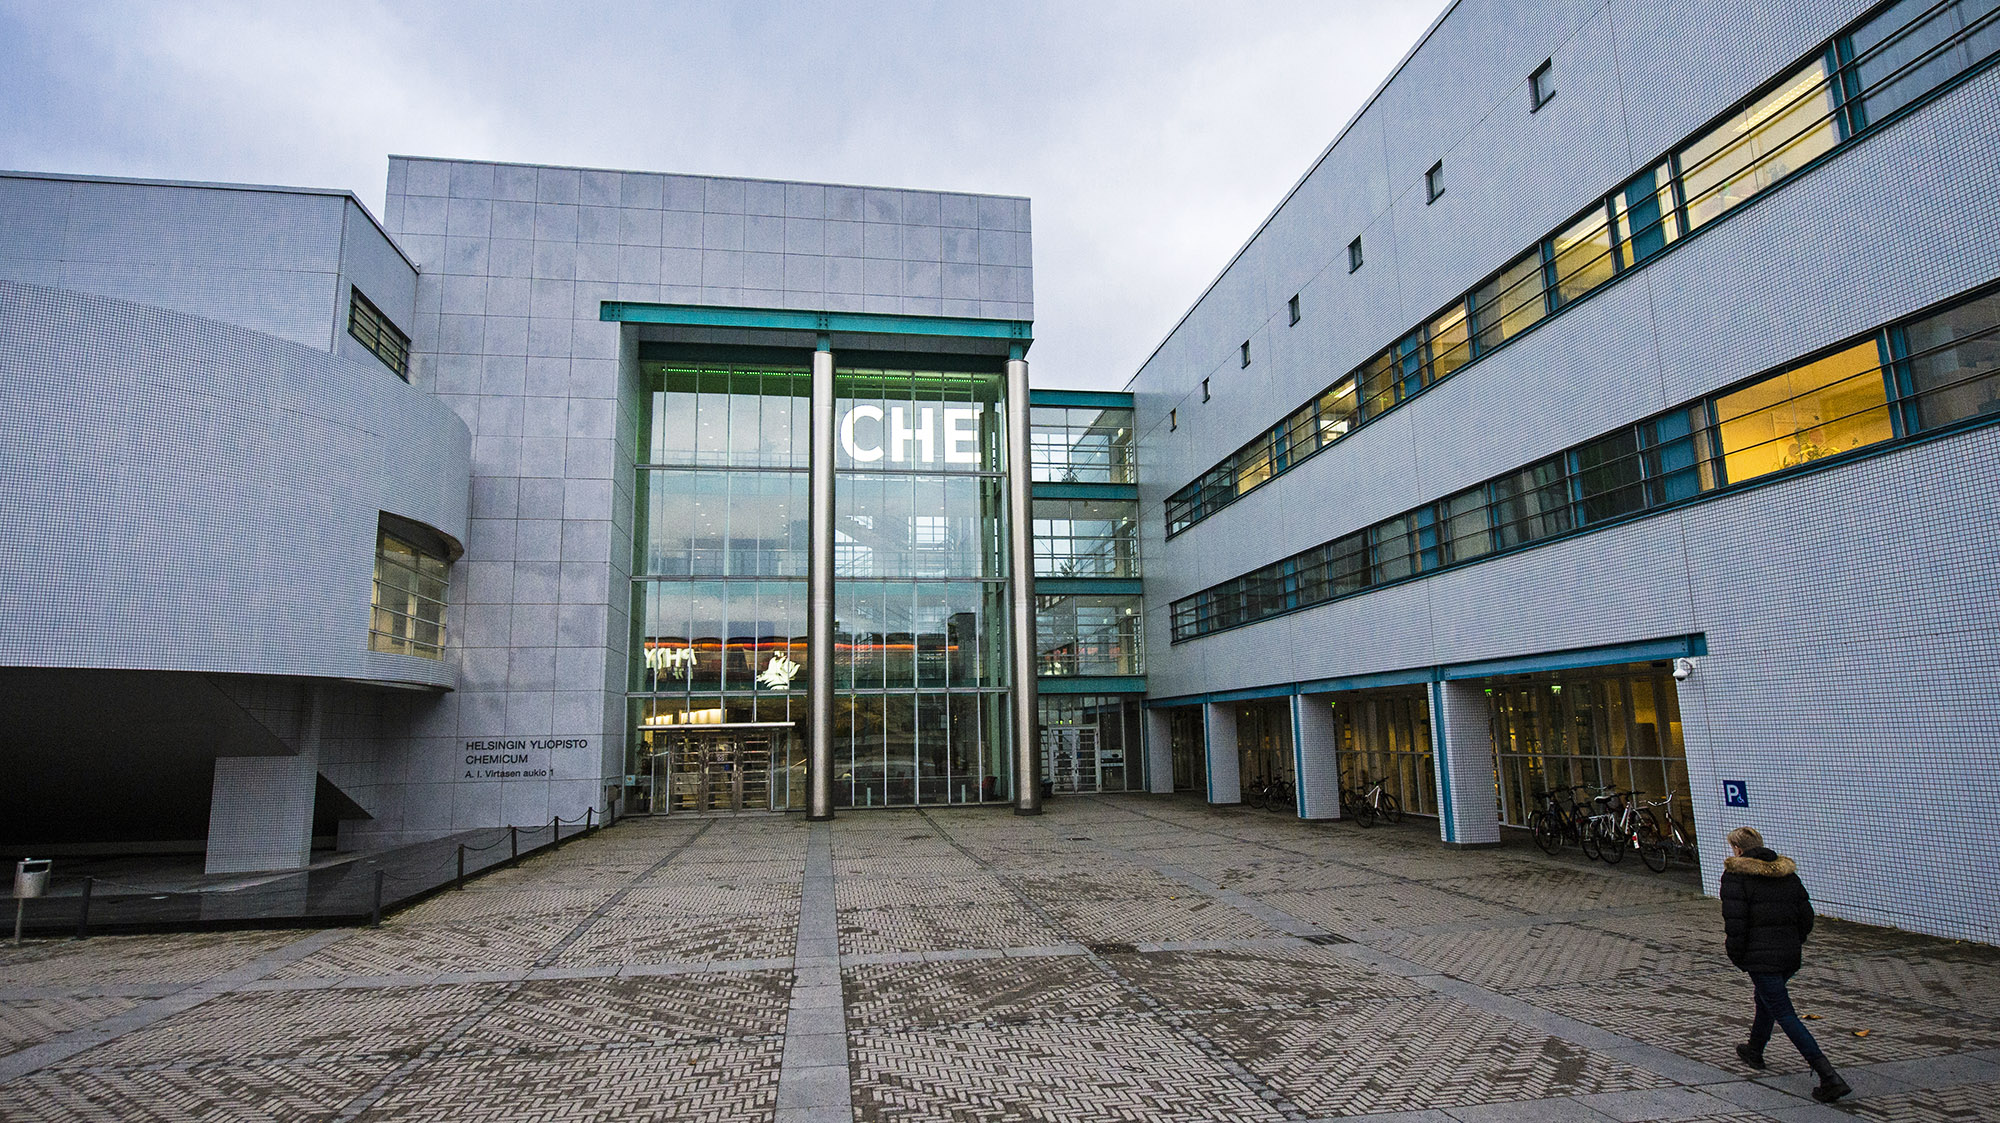 Chemicum building at the Kumpula Campus